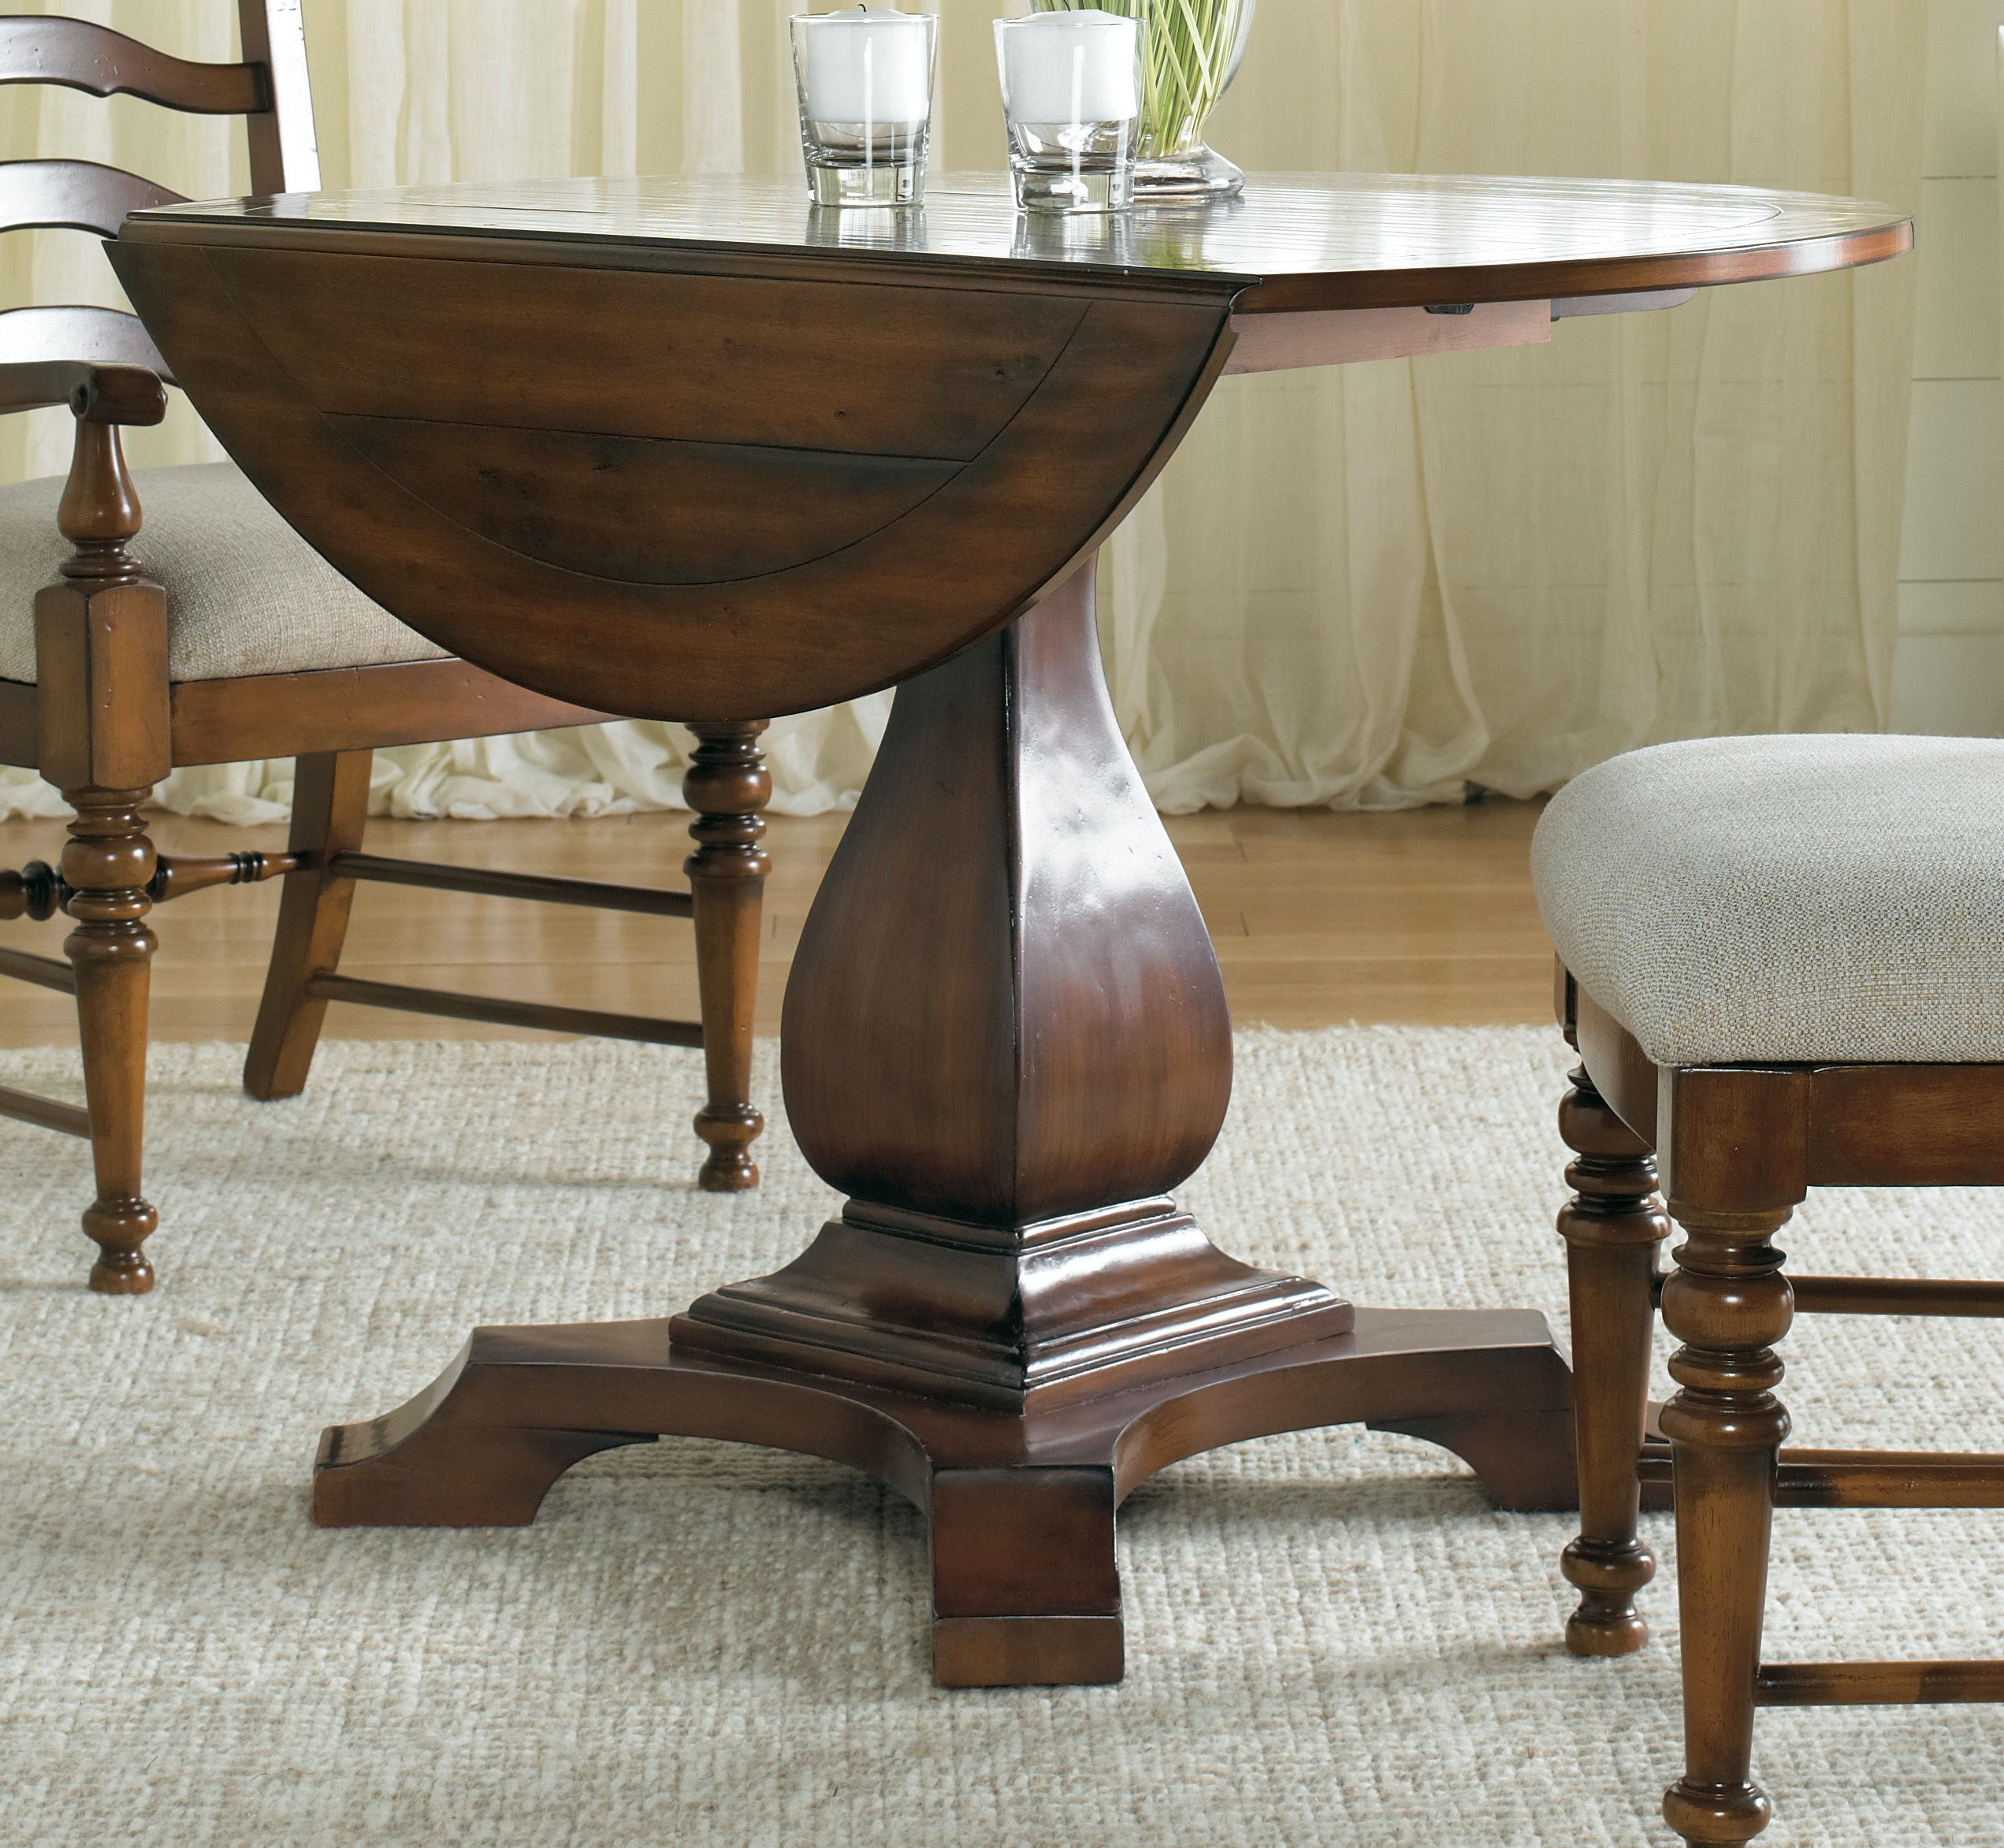 Hooker Furniture Waverly Place Round Drop Leaf Pedestal Table 366 75 218